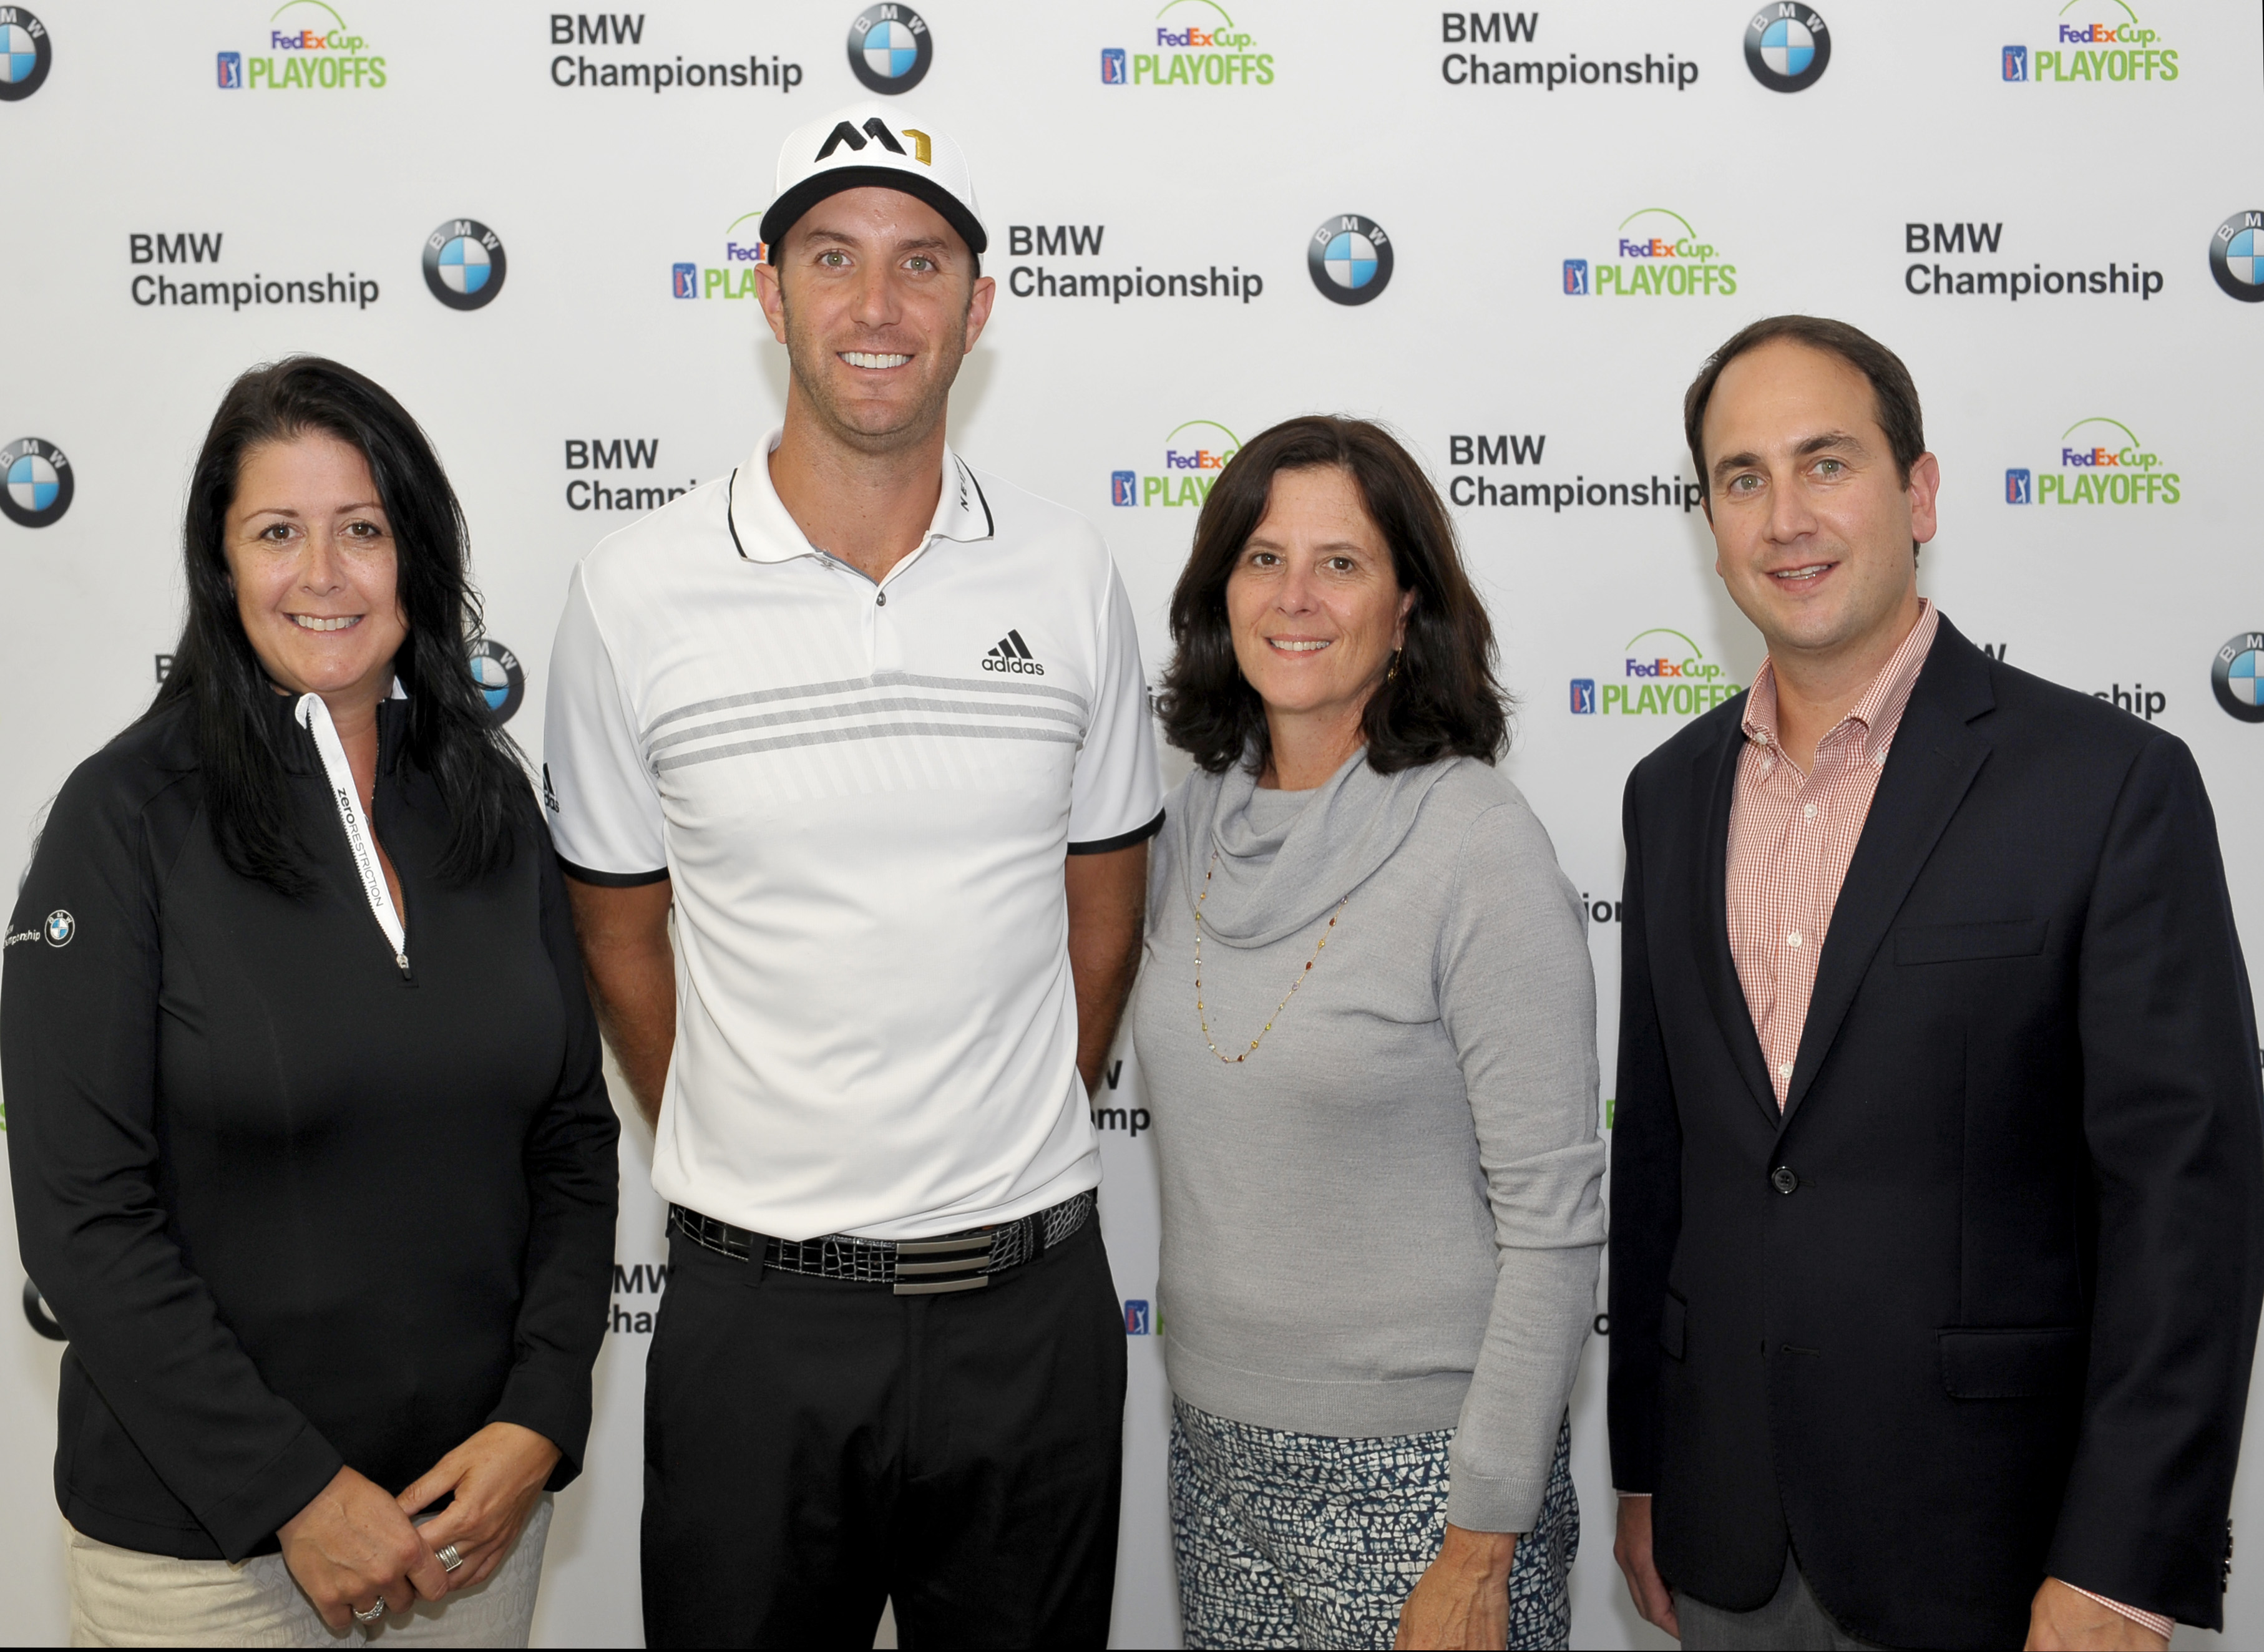 BMW Signs On as Official Partner of USA GOLF Federation for Rio 2016 Olympic Games